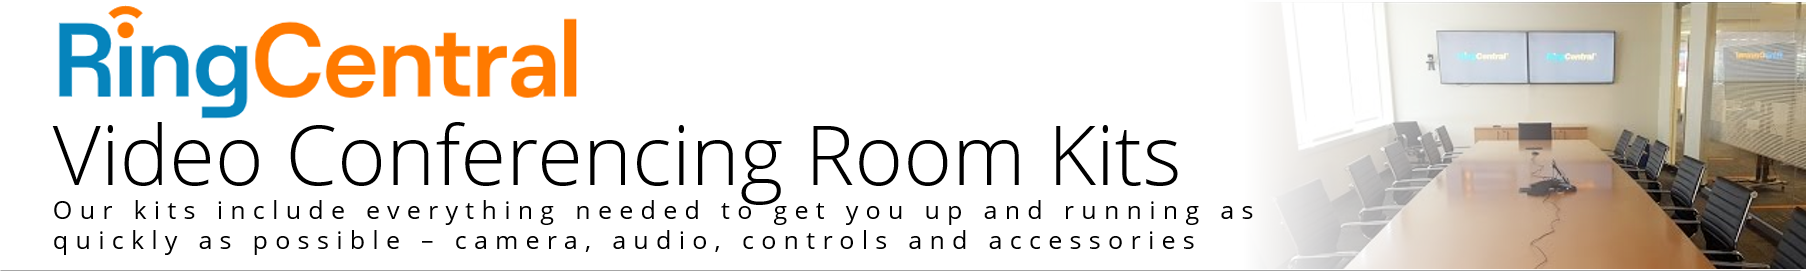 Video Conferencing Room Kits